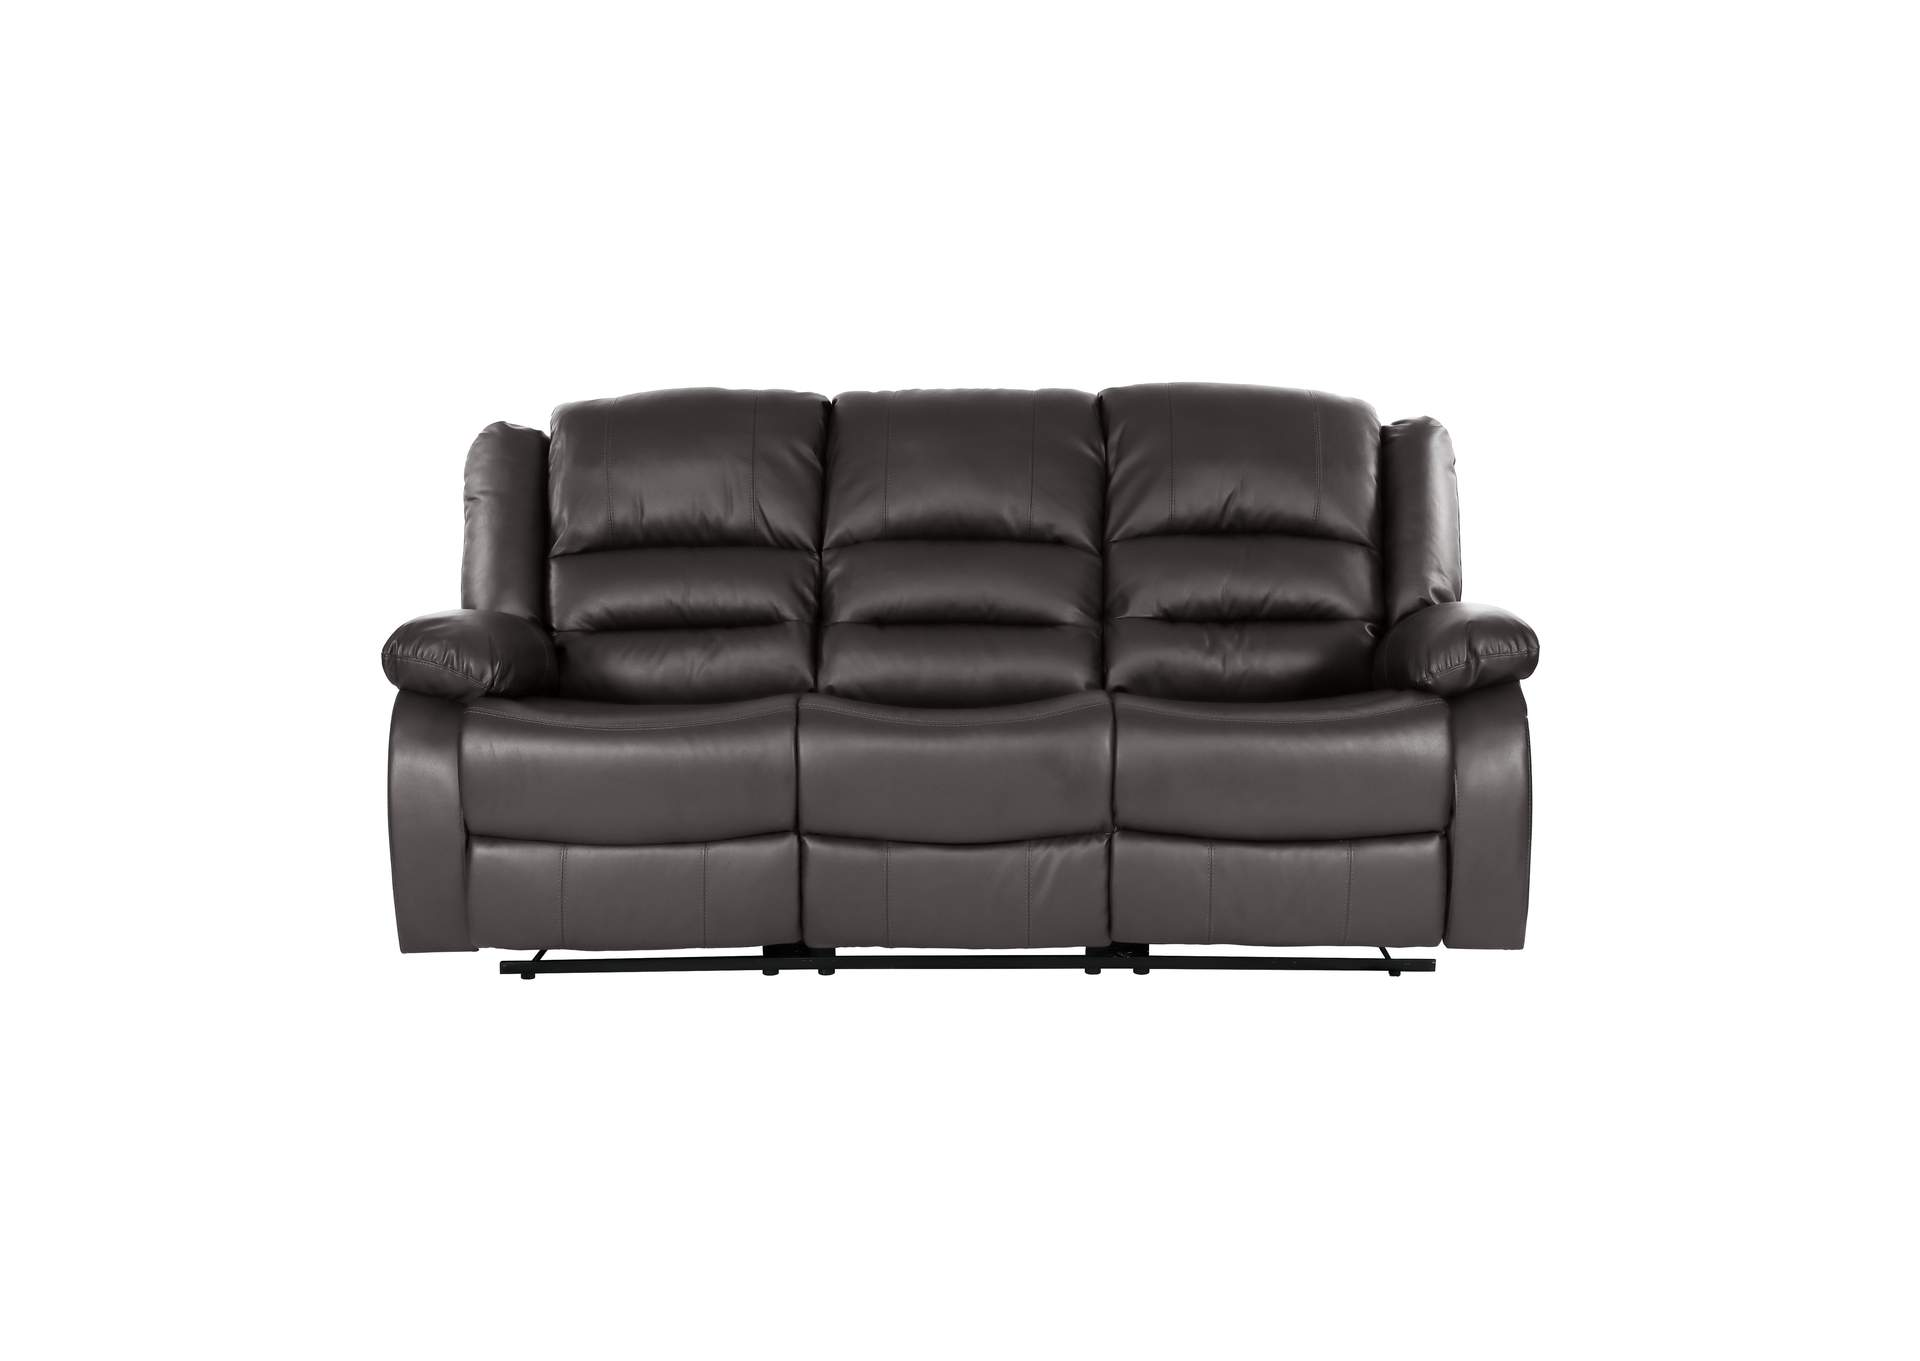 Brown Double Reclining Sofa,Homelegance